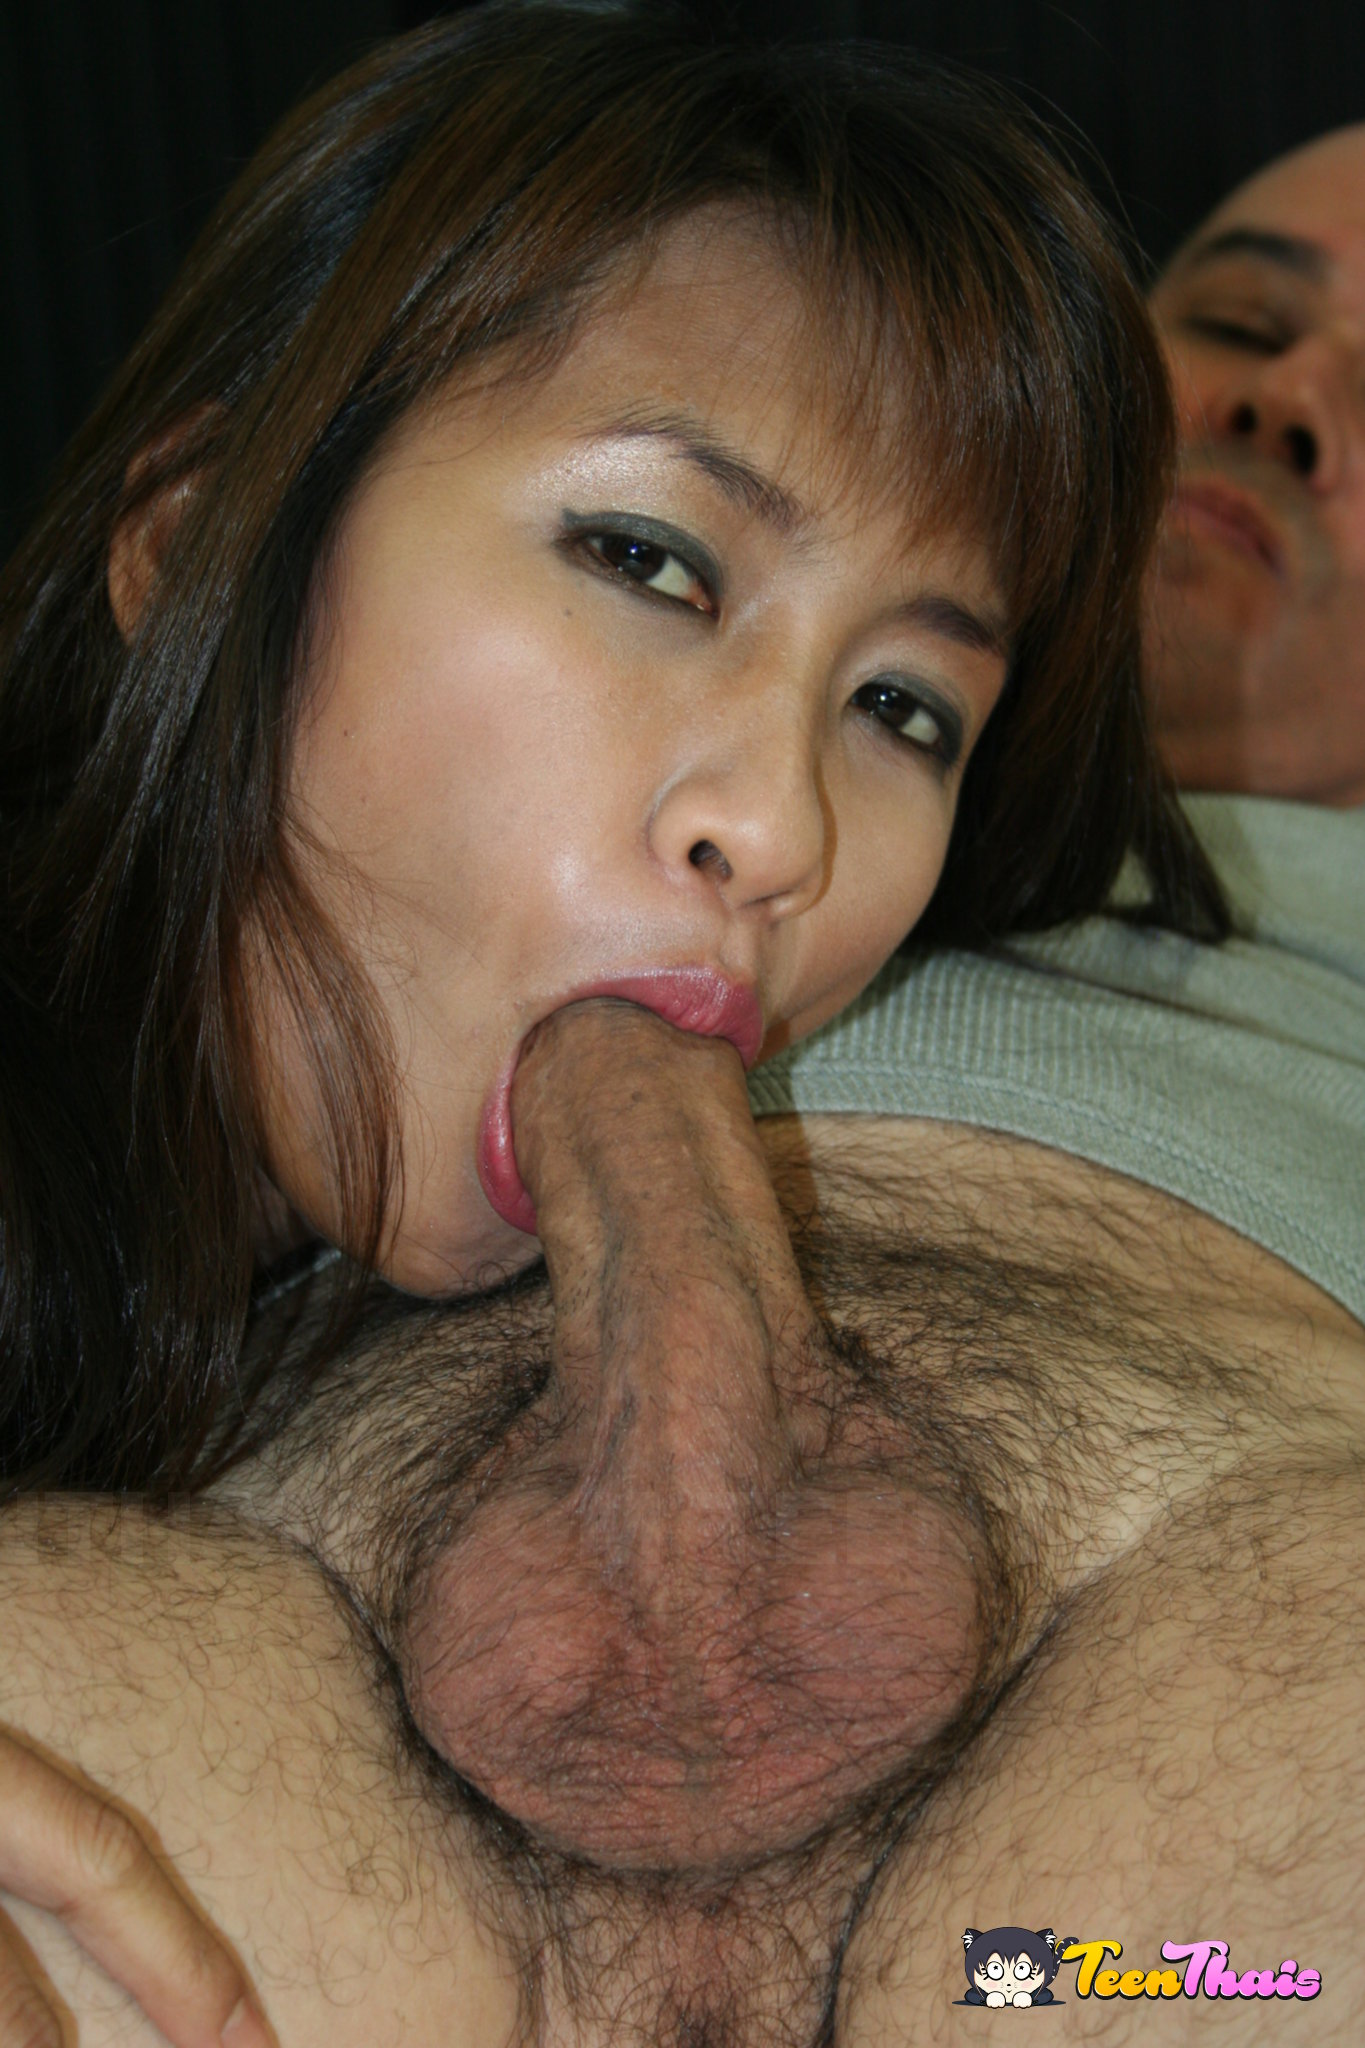 Assured, vietnamese woman fucking pictures